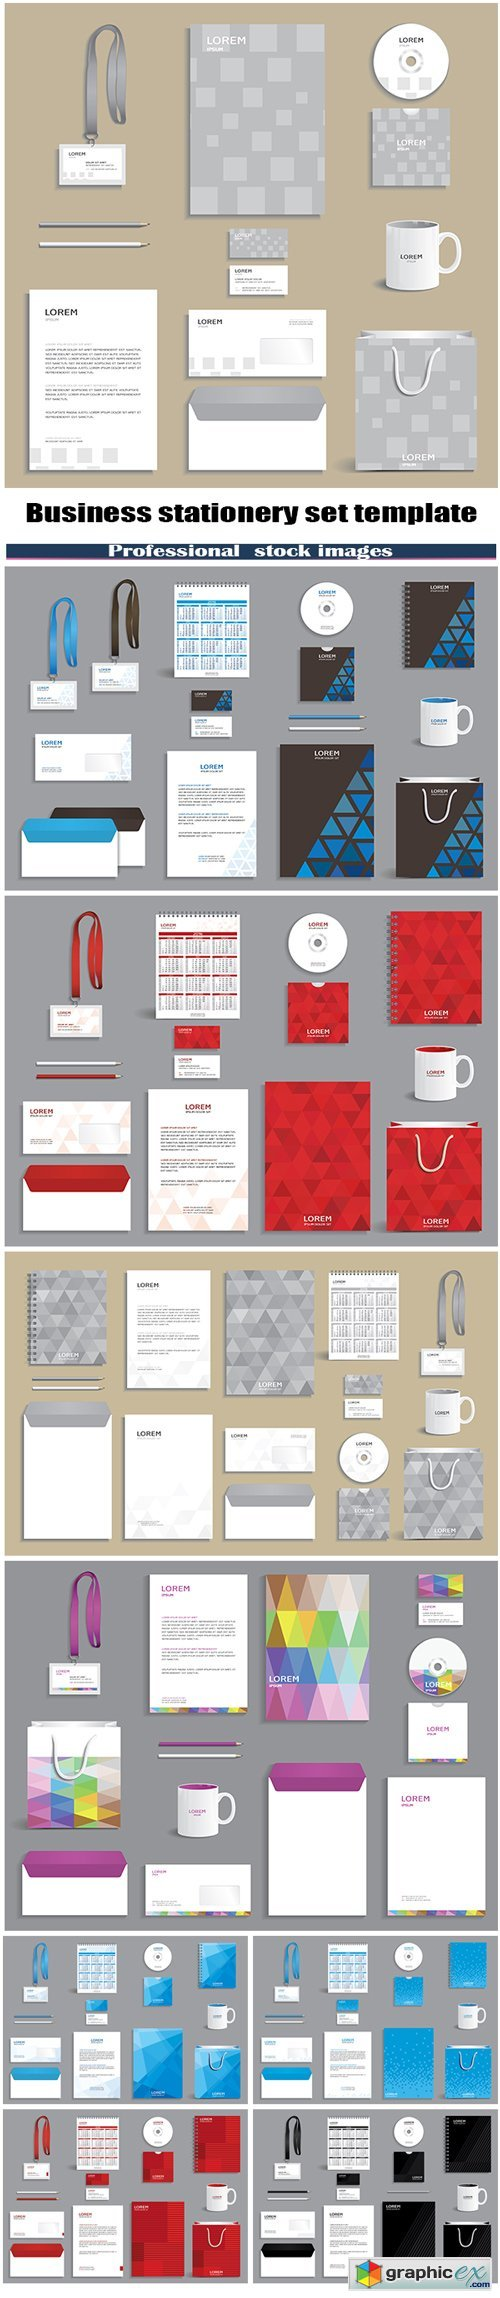 Business stationery set template